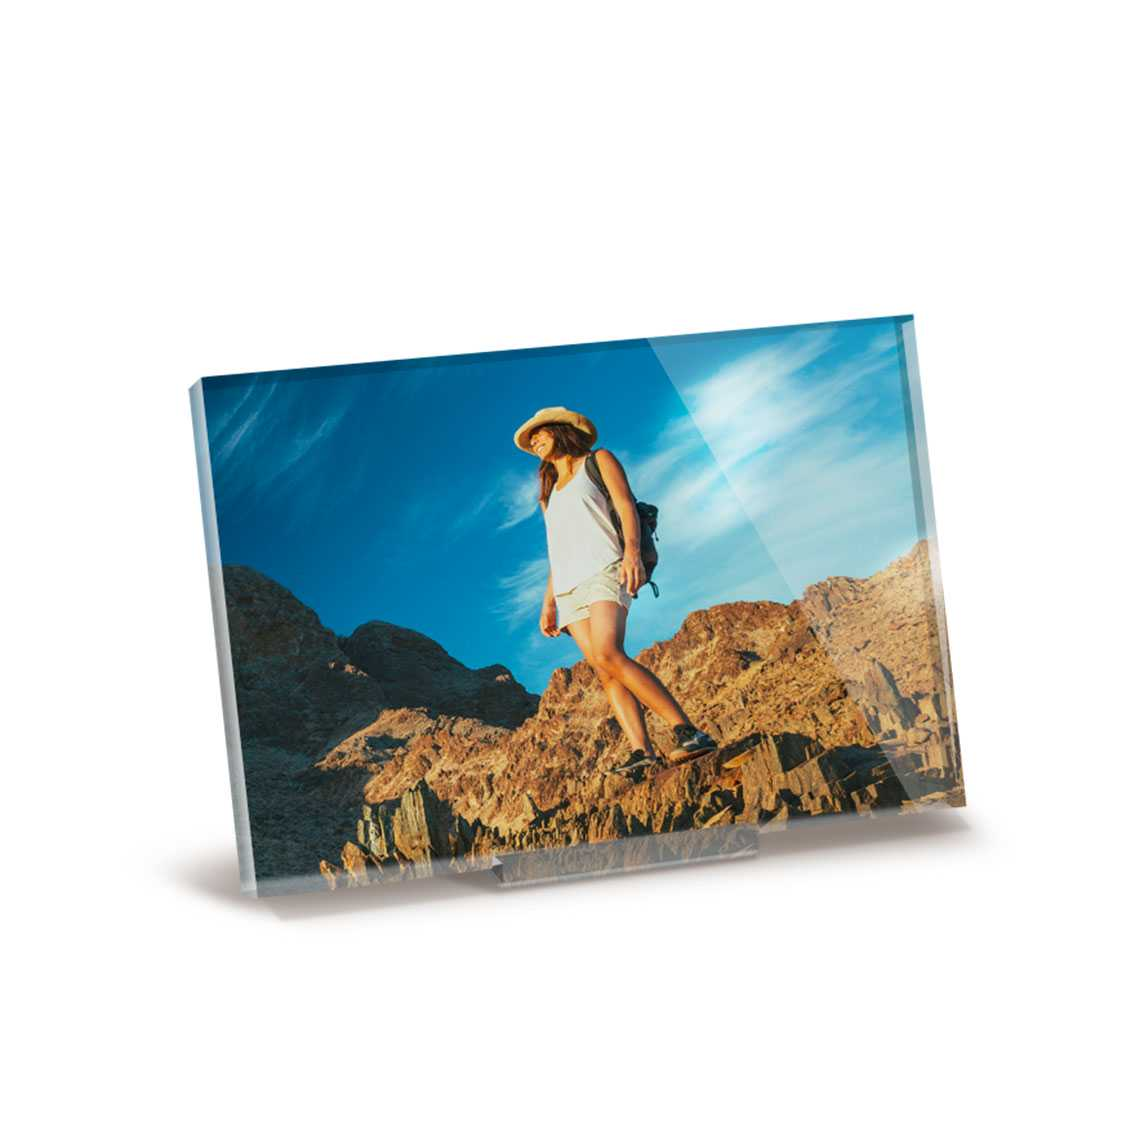 Acrylic Photo Panels